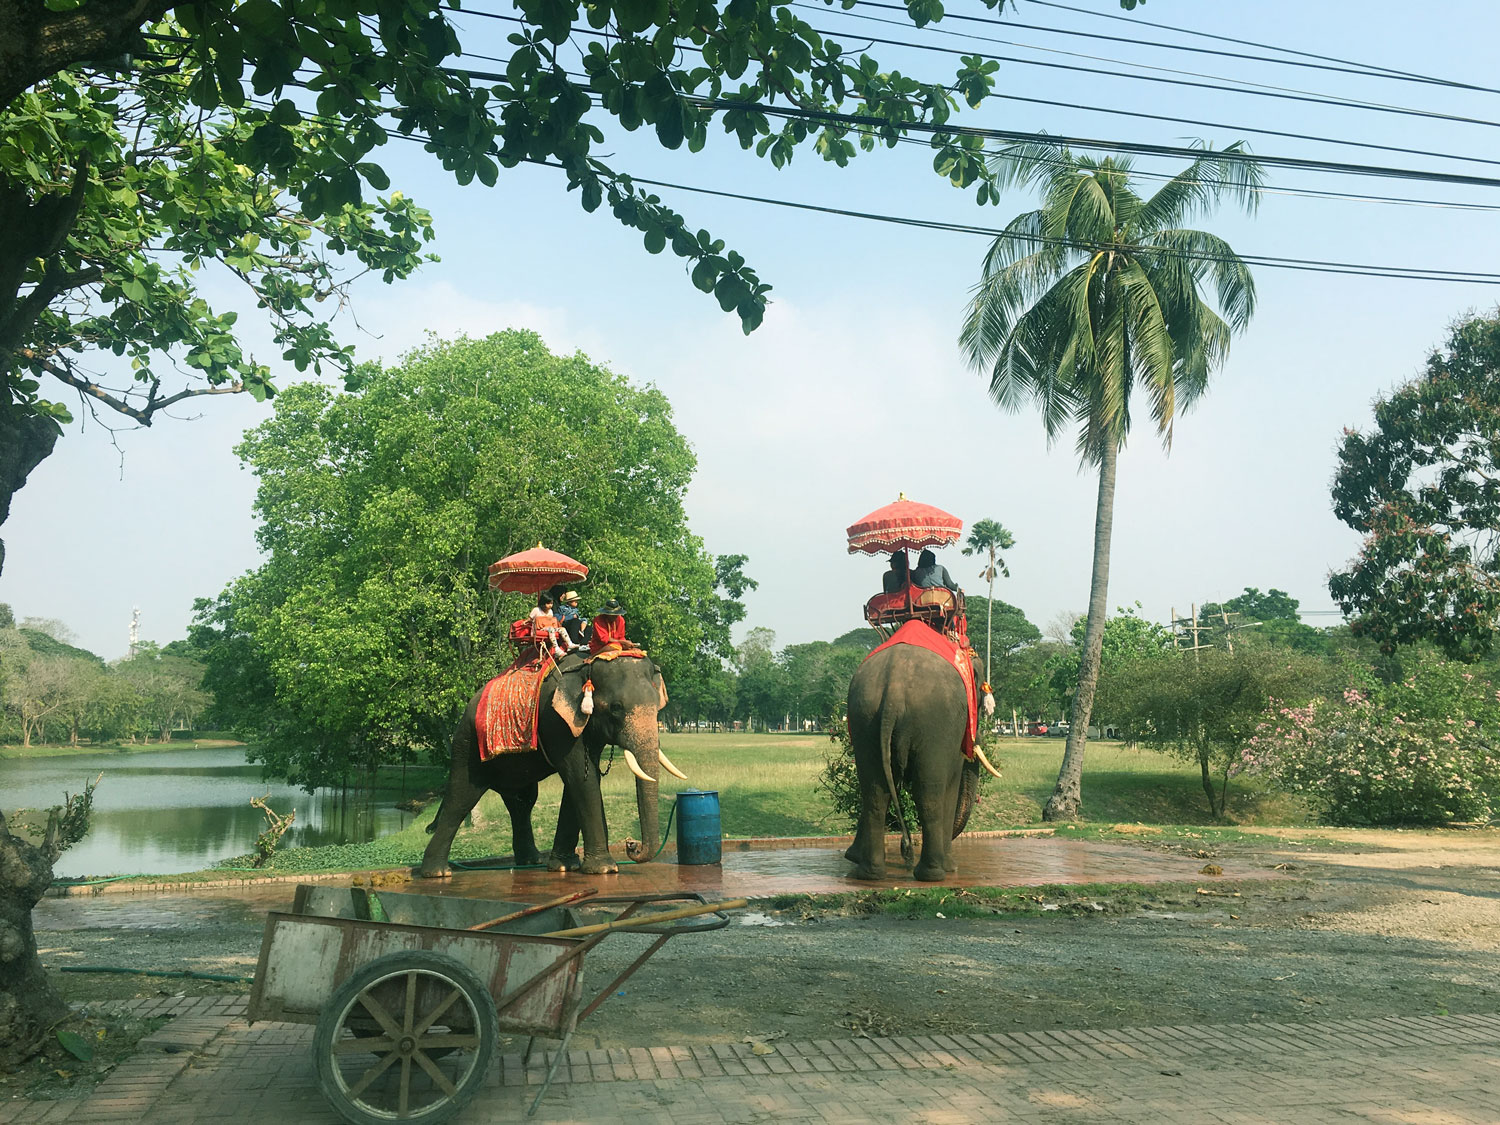 Do not Ride the trained Elephants or support Elephant Tourism in Thailand